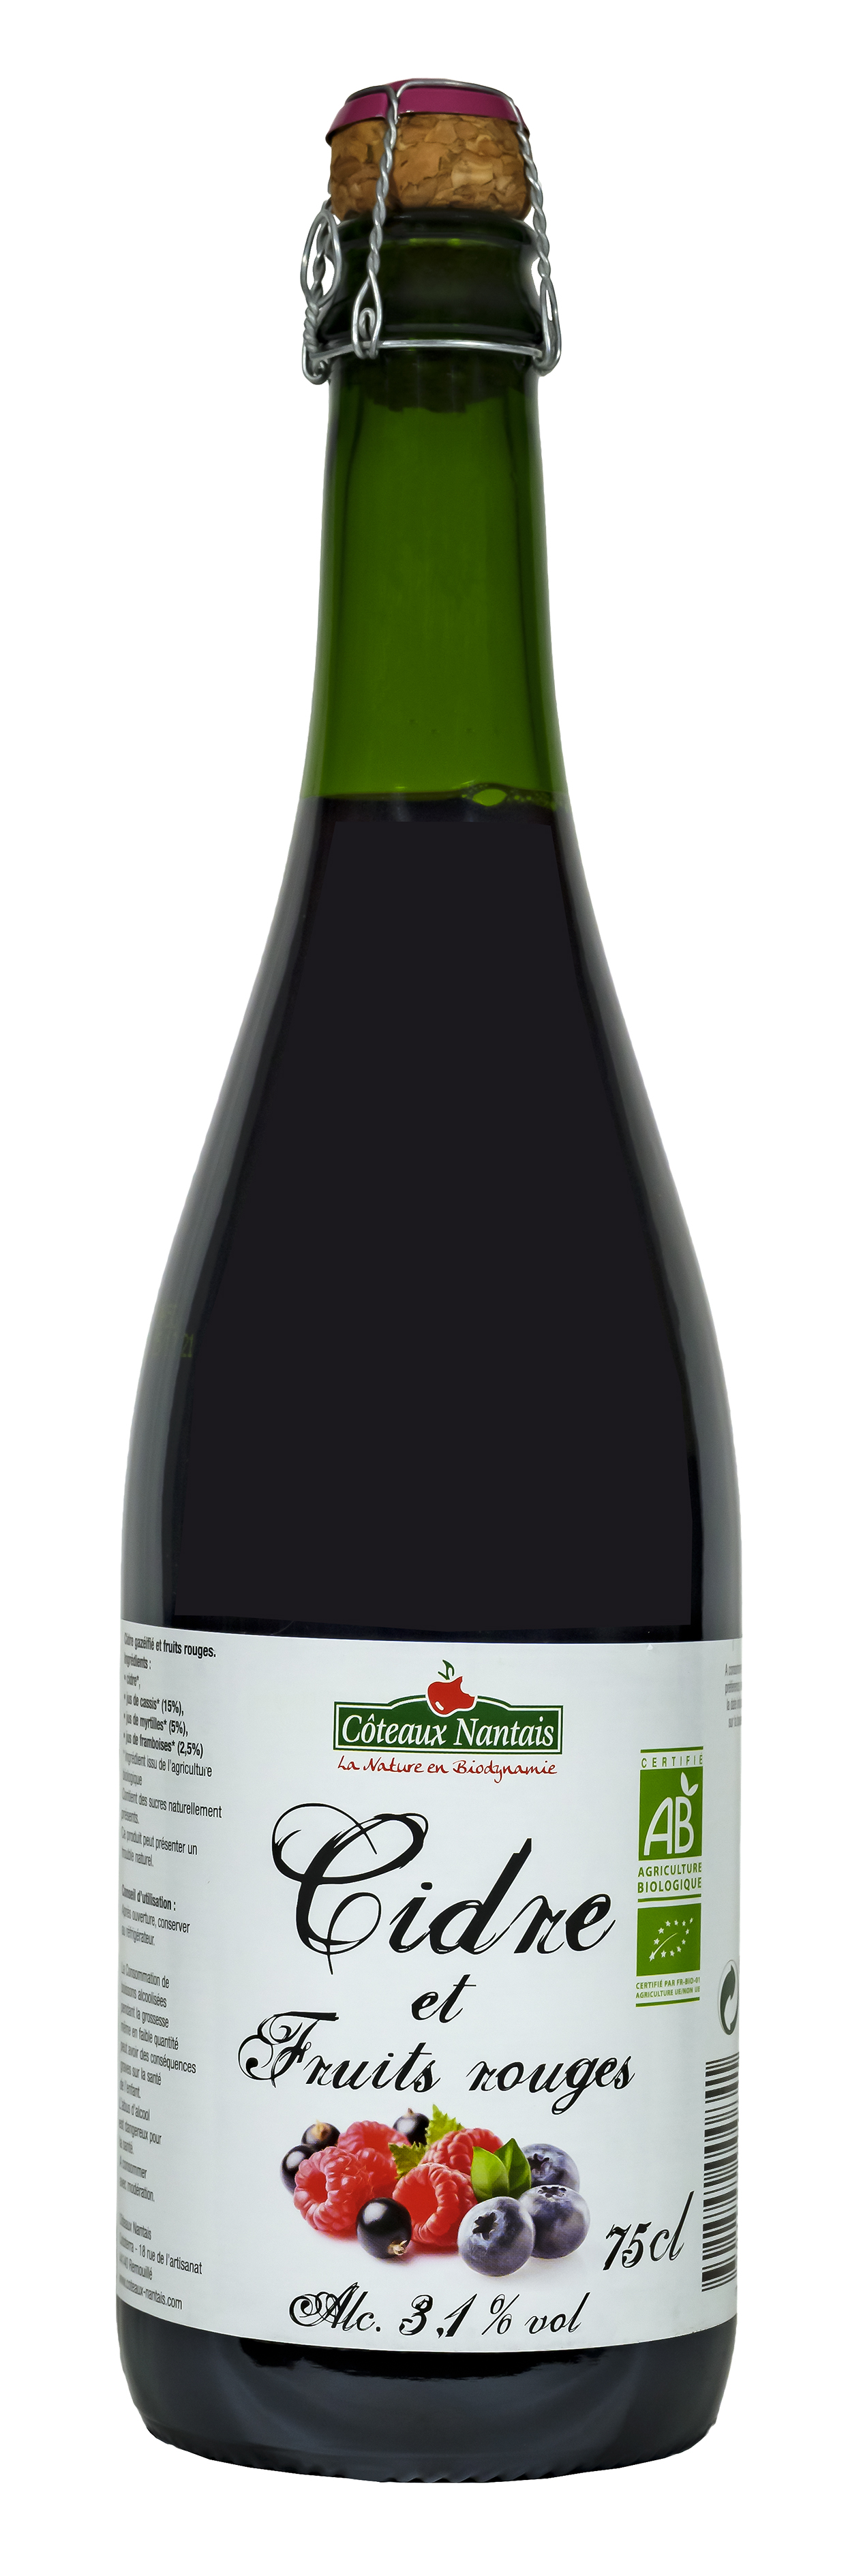 3301592000841_cidre_fruits_rouges_75cl.jpg